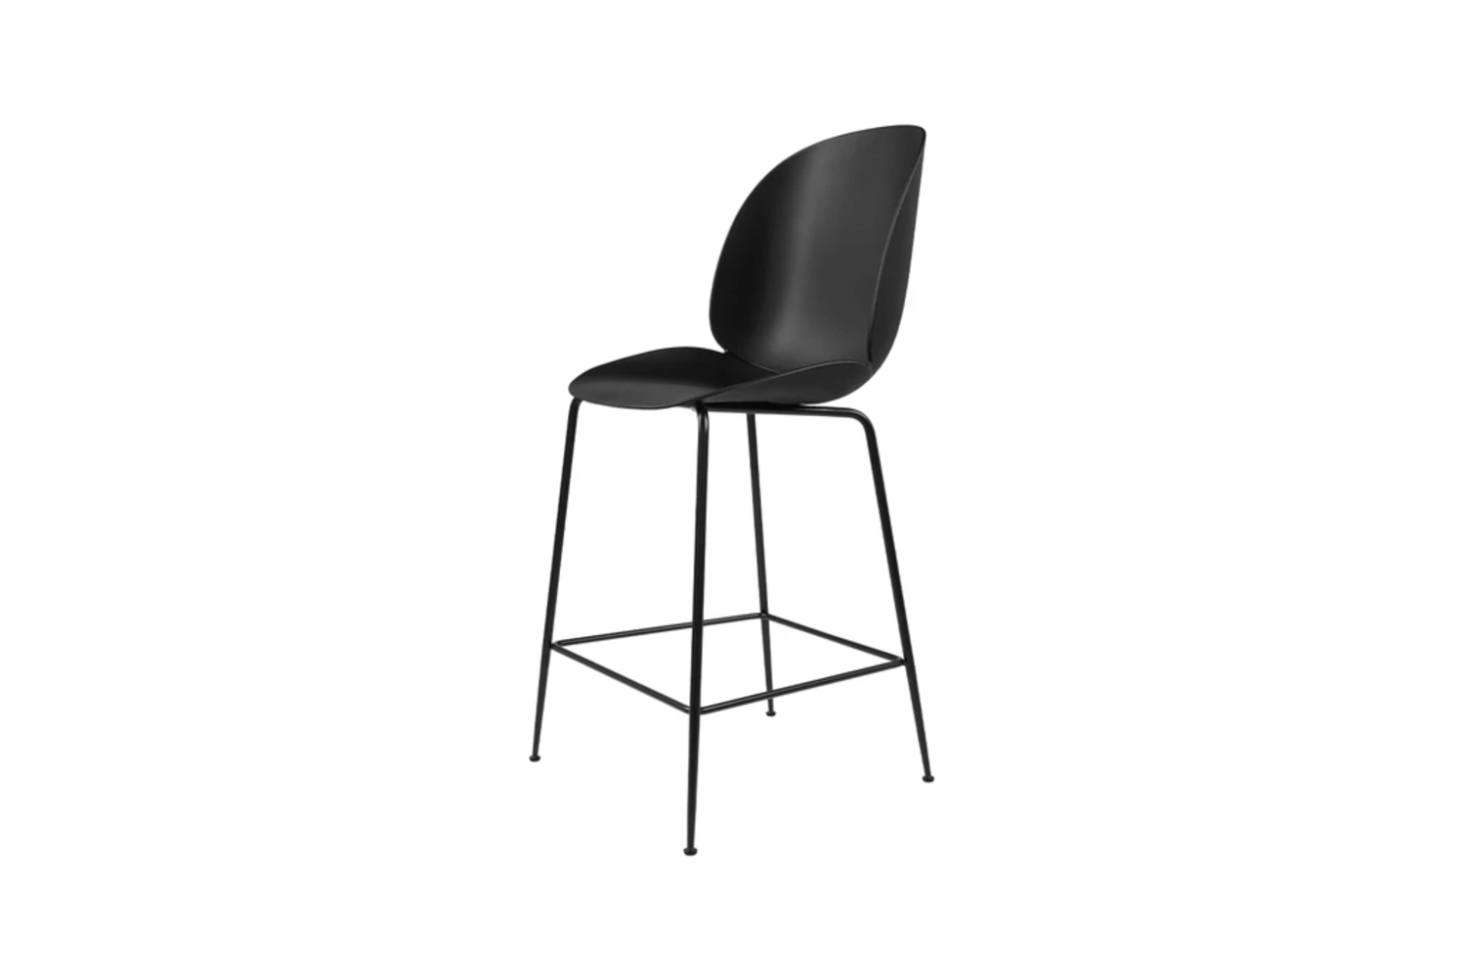 The Gubi Beetle Counter Stoolis available in a range of colors for both the base and shell; $545 at Lekker Home.